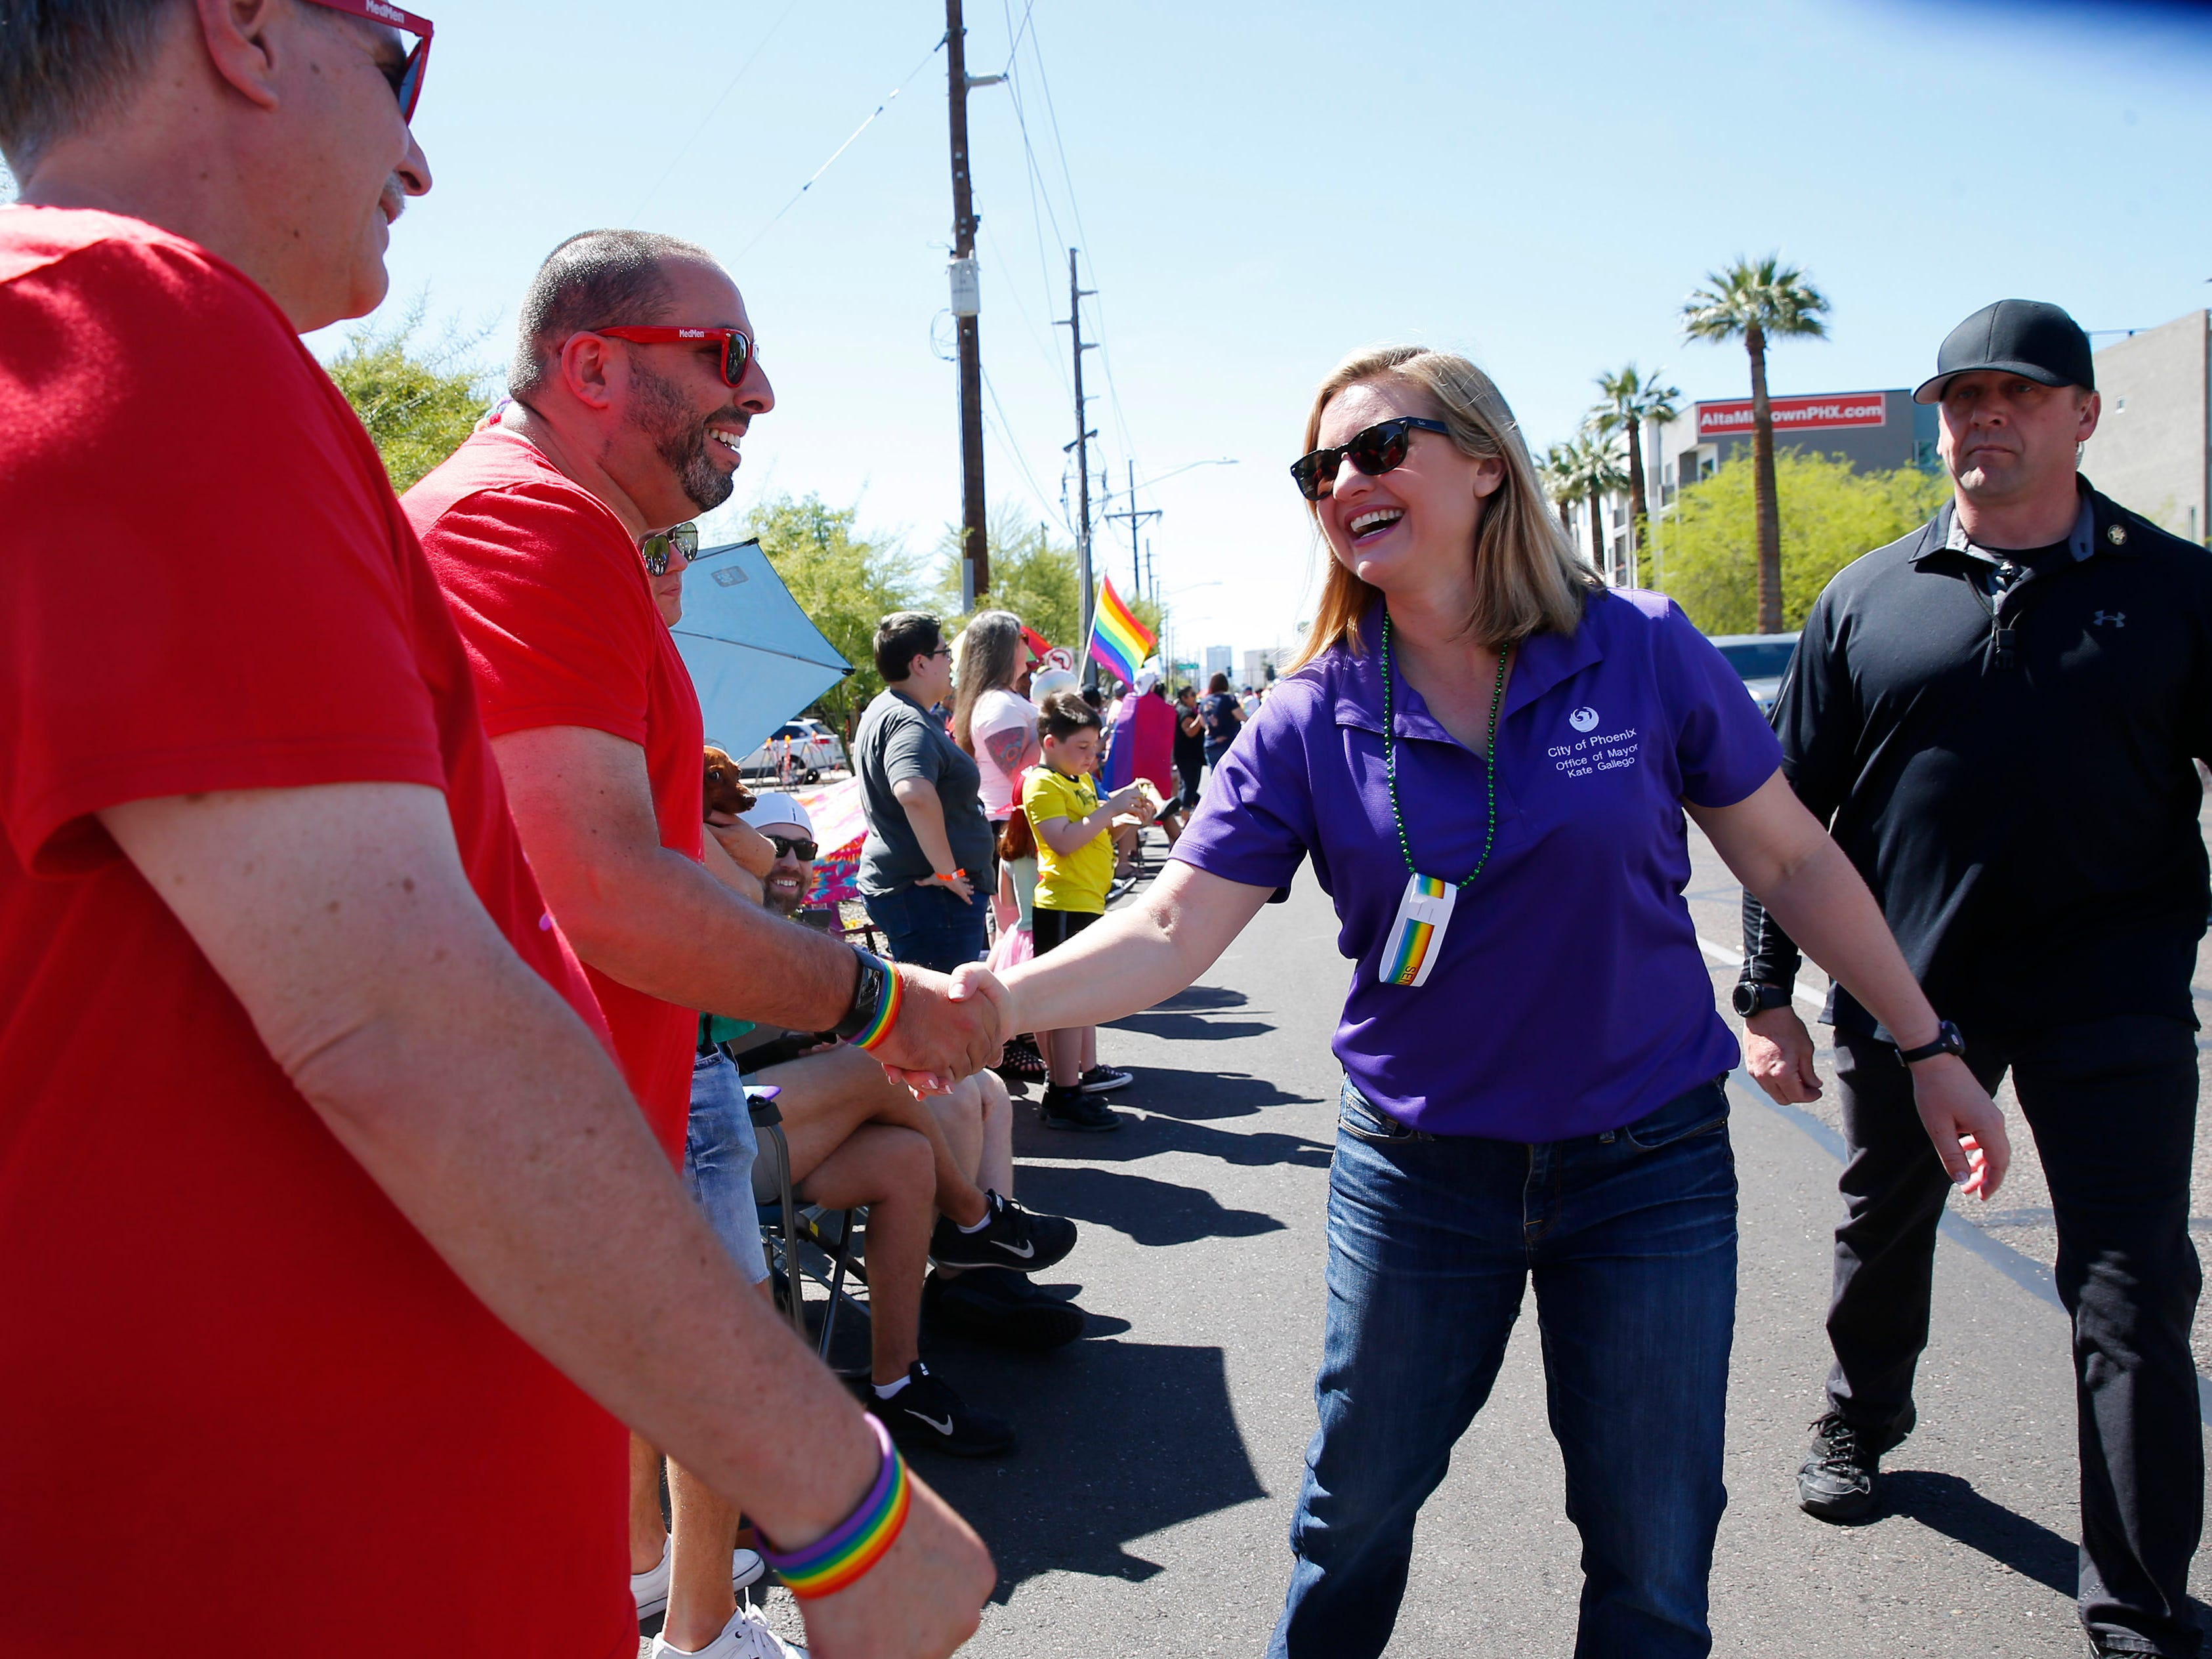 Phoenix Mayor Kate Gallego shakes hands during the Phoenix Pride Parade on April 7, 2019.